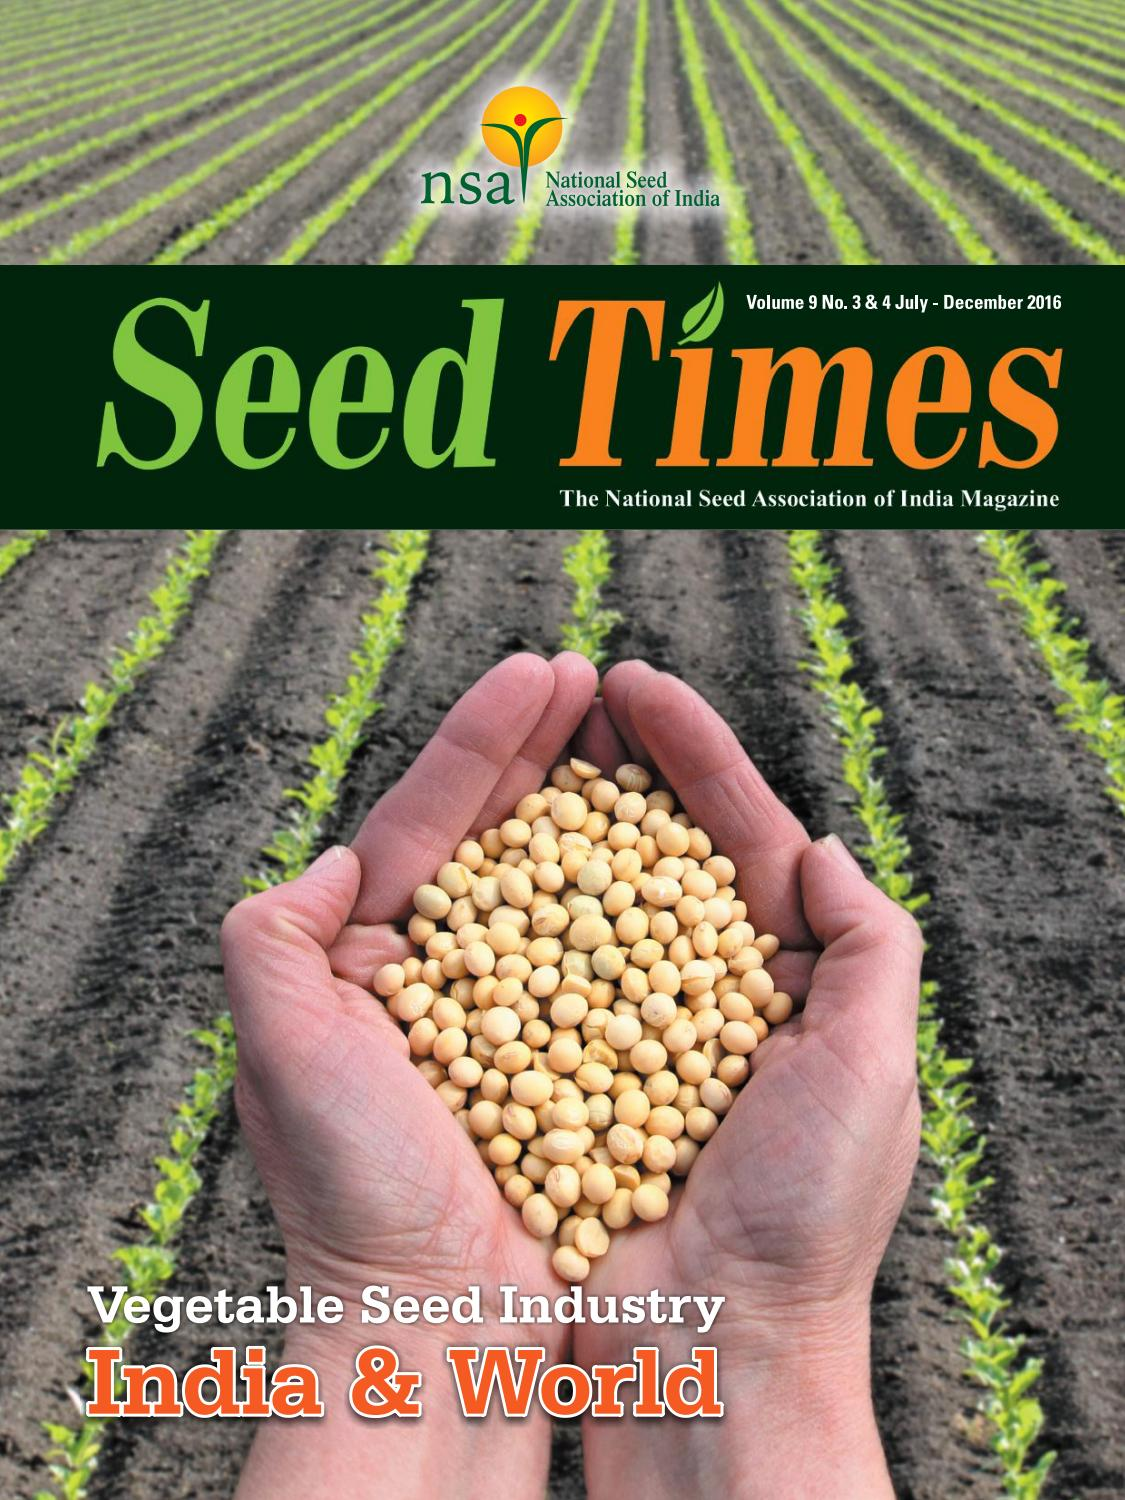 Vegetable seed industry india and world vol 9 no 3 4 for Top 10 product design companies